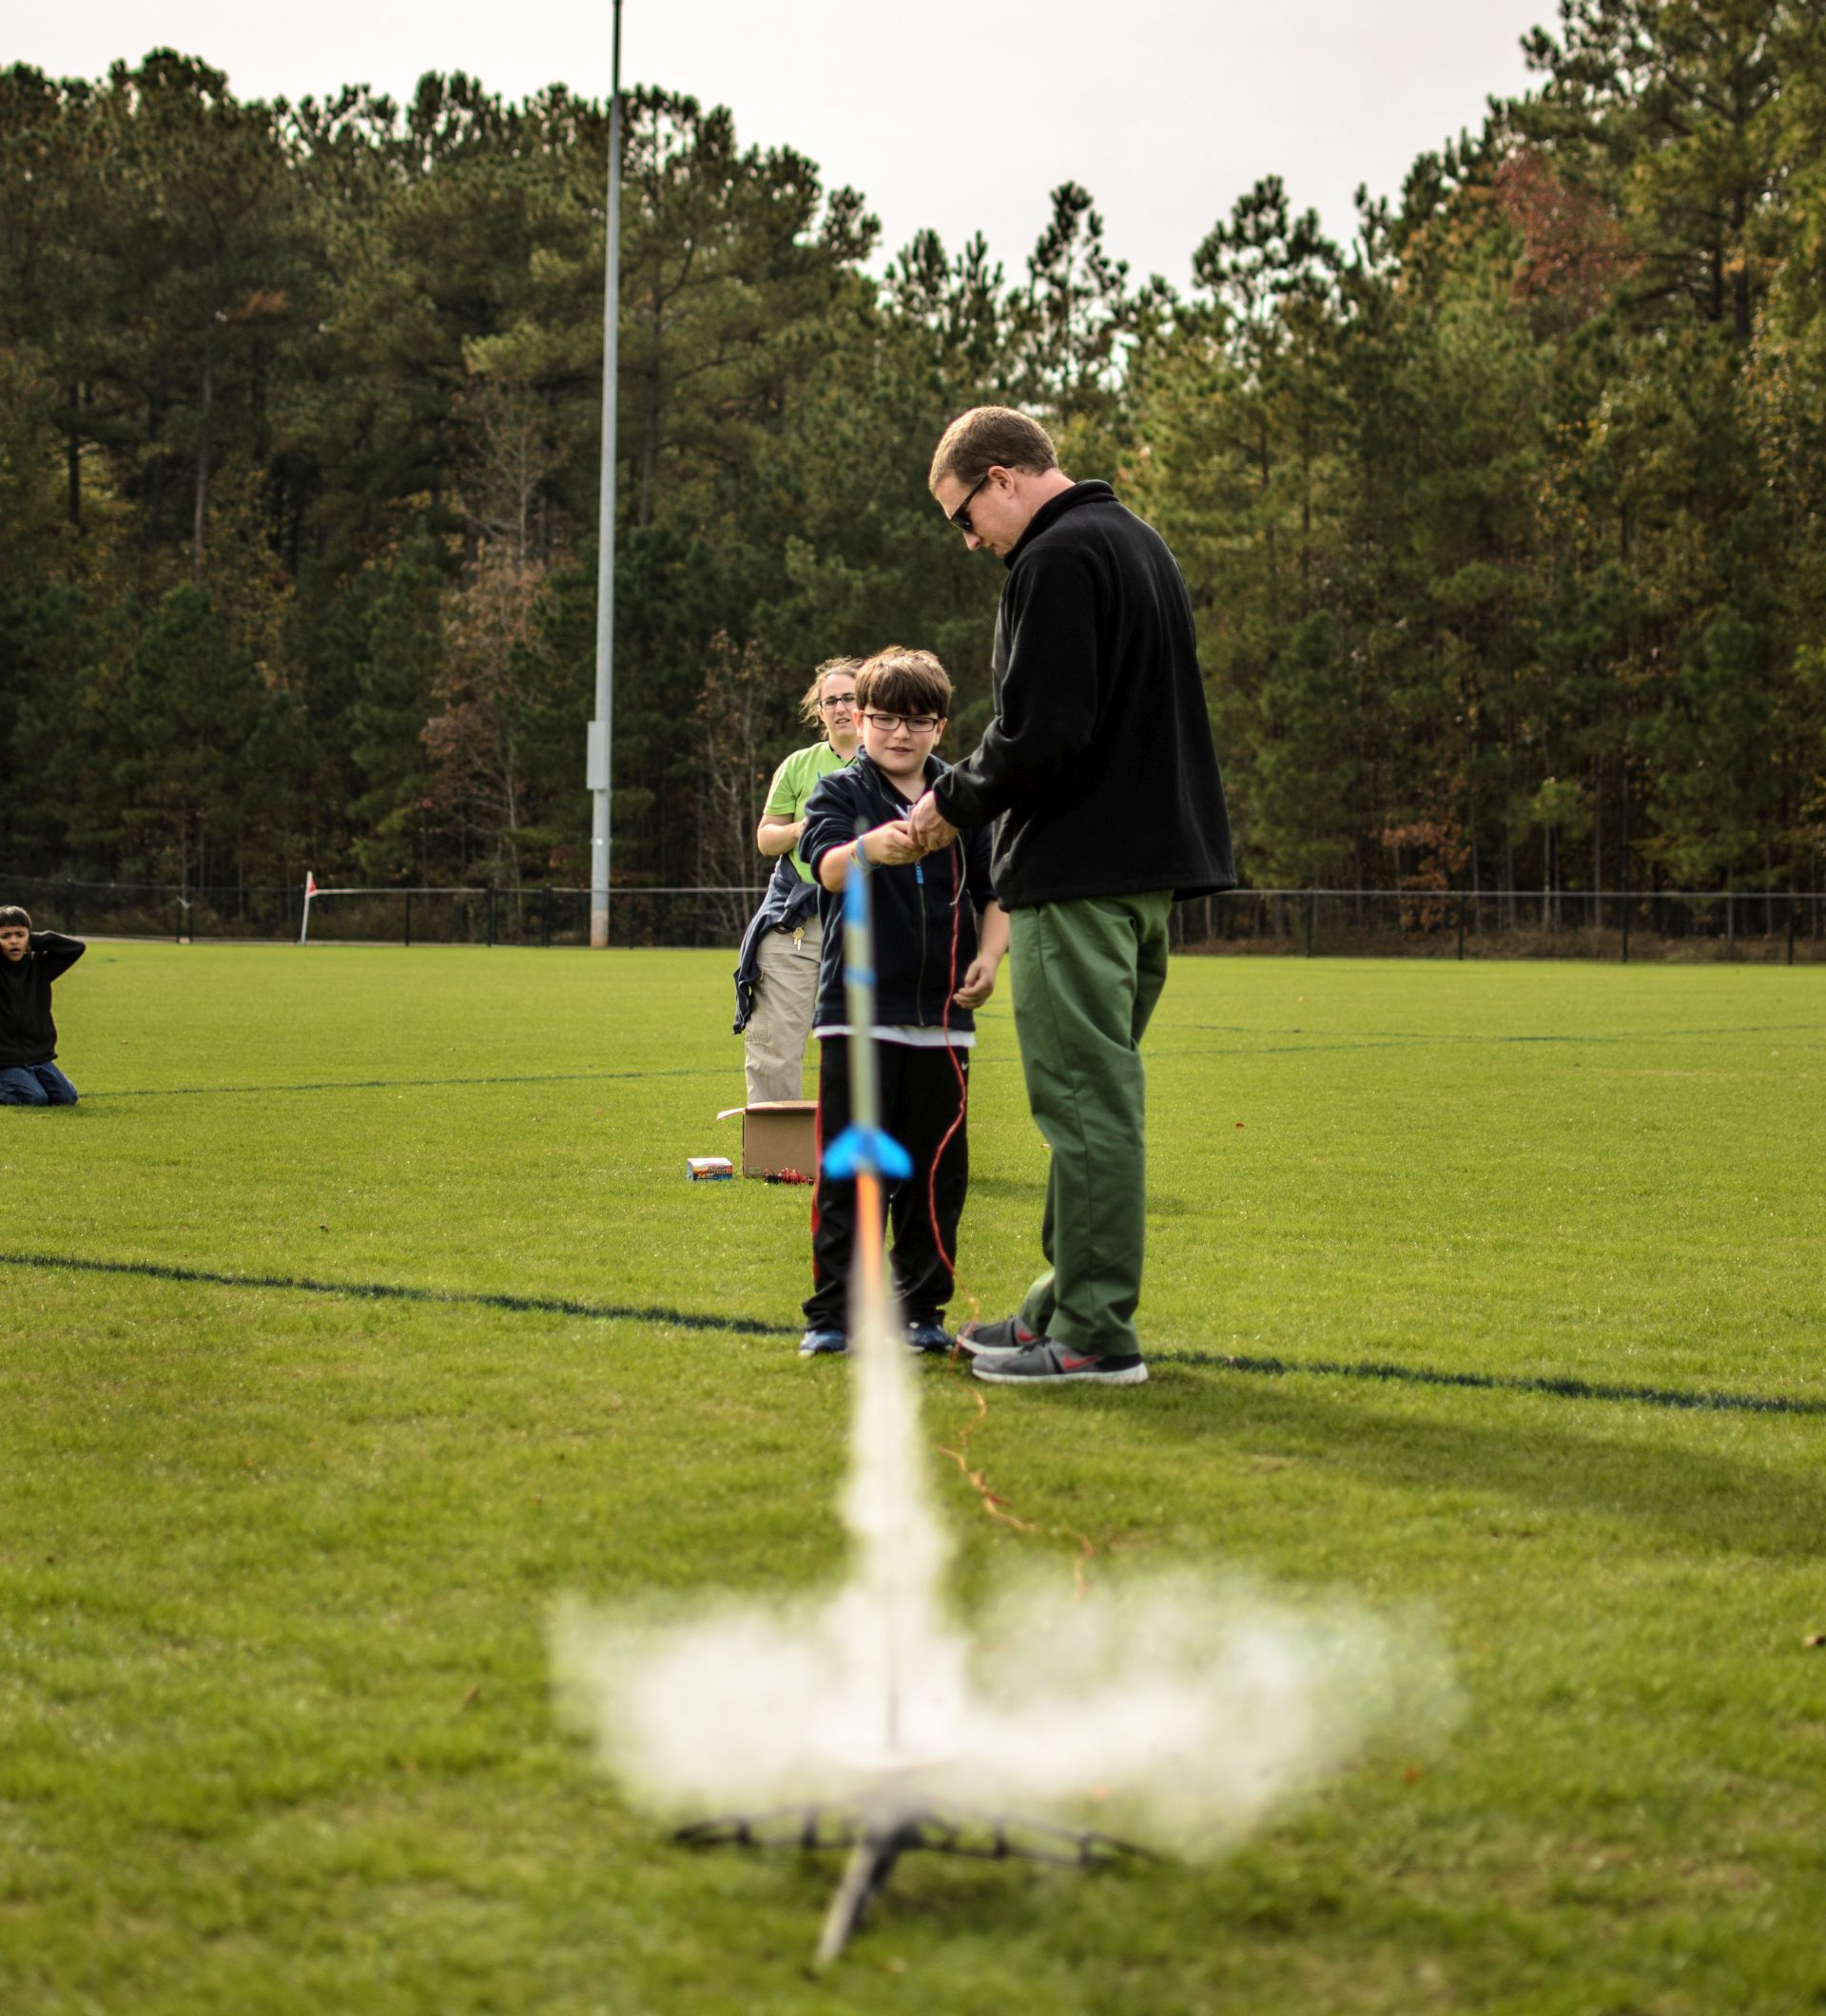 Model rocket taking off